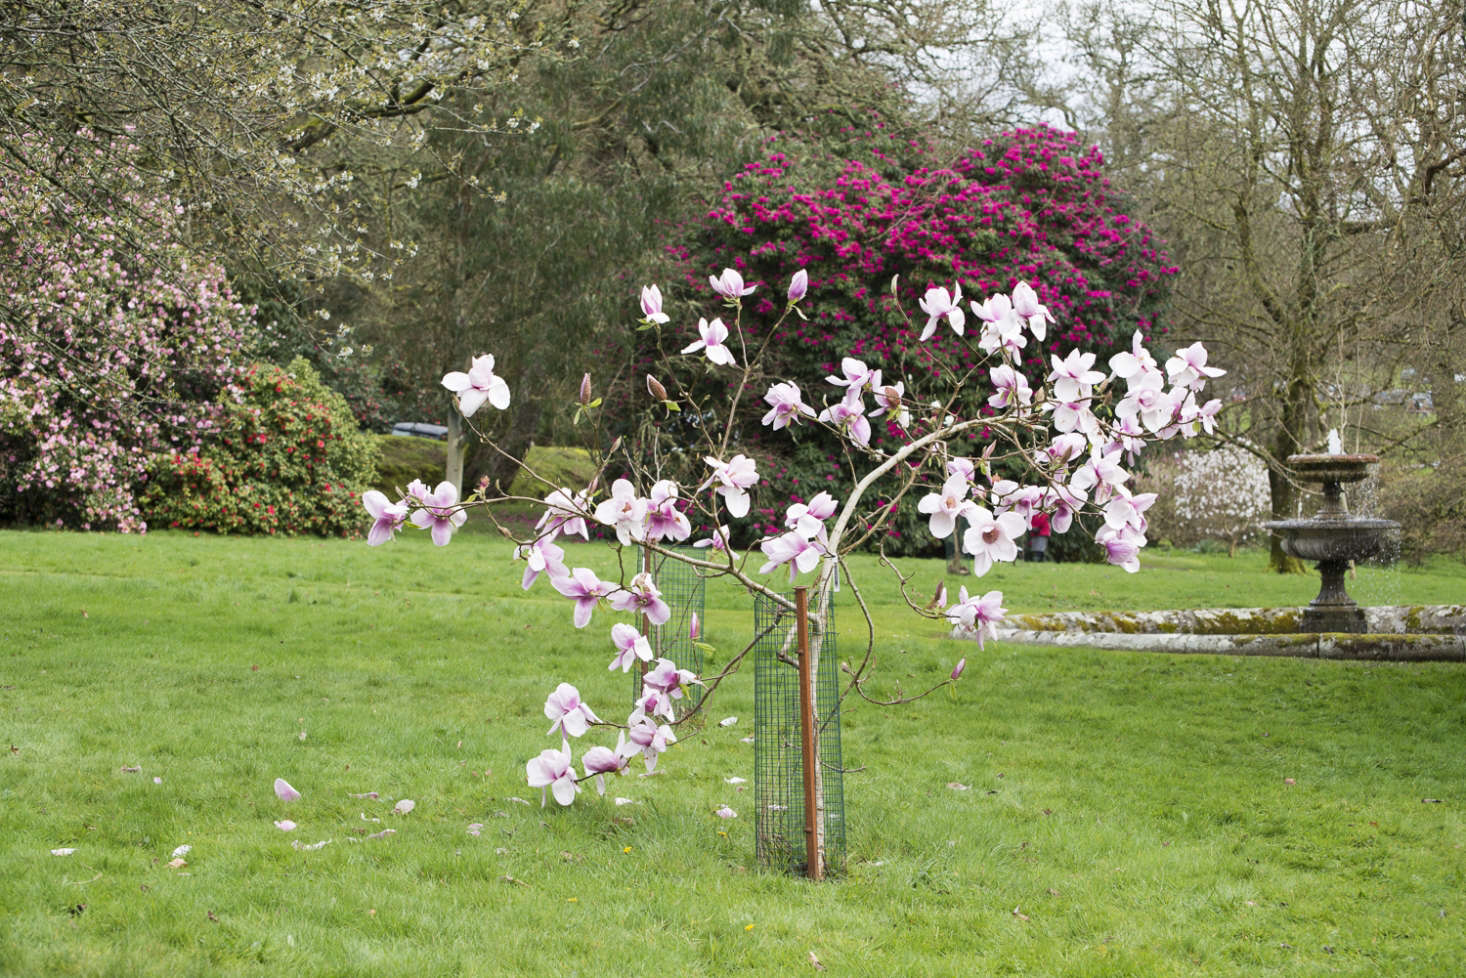 Magnolia 'Iolanthe'has bigblooms on a young tree. Photograph byHeather Edwardsfor Gardenista, fromFlowering Magnolias: 7 Favorite Trees to Plant.